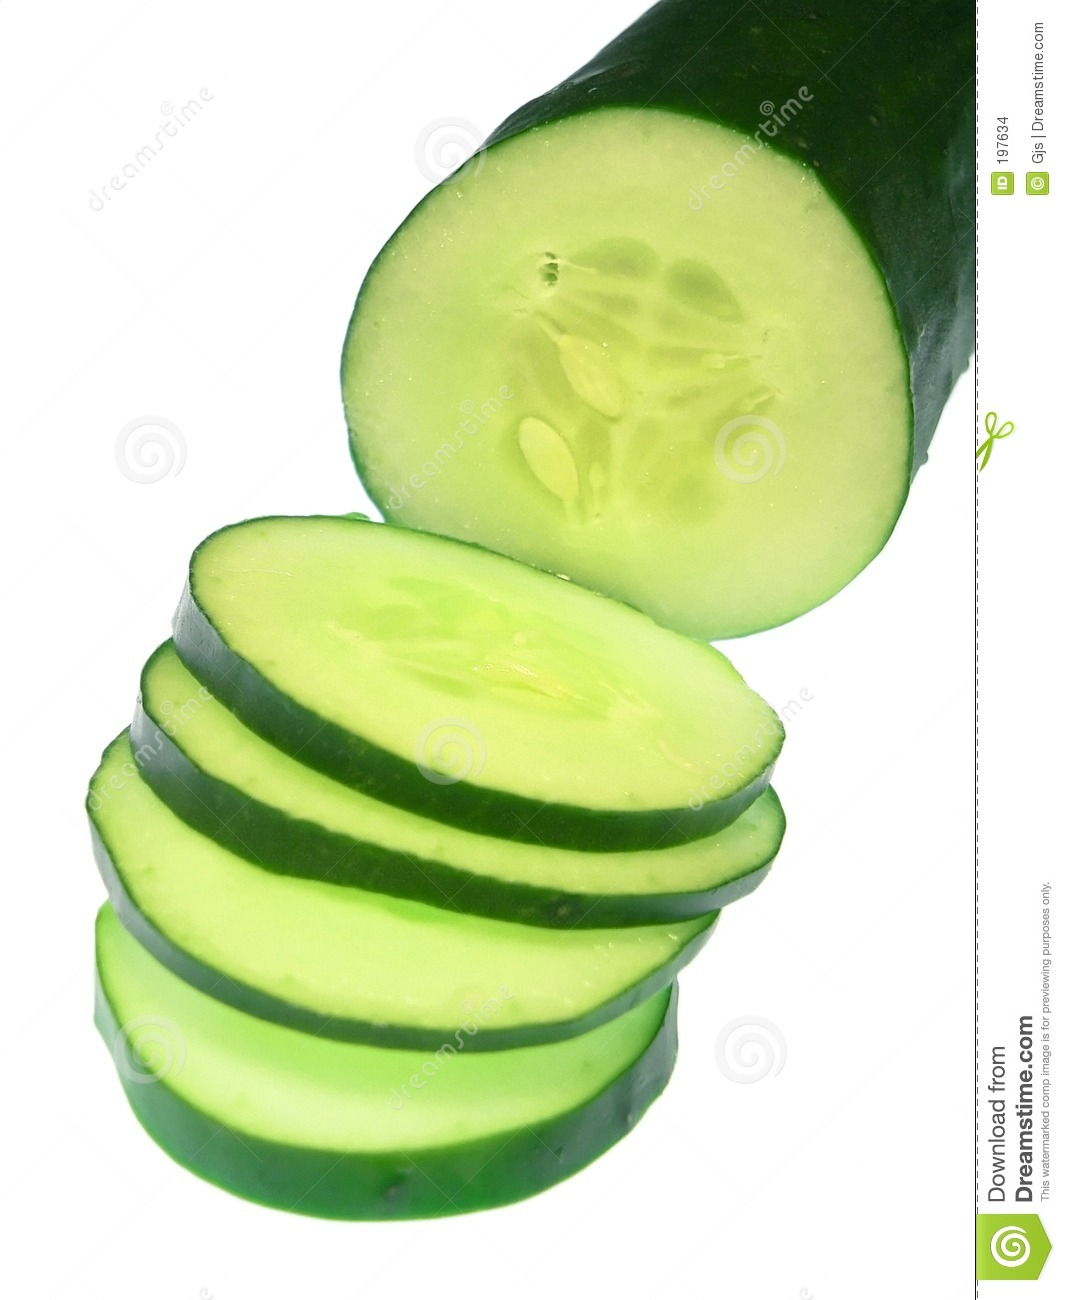 cucumber slice clip art black and white - Cucumber Slice PNG Black And White